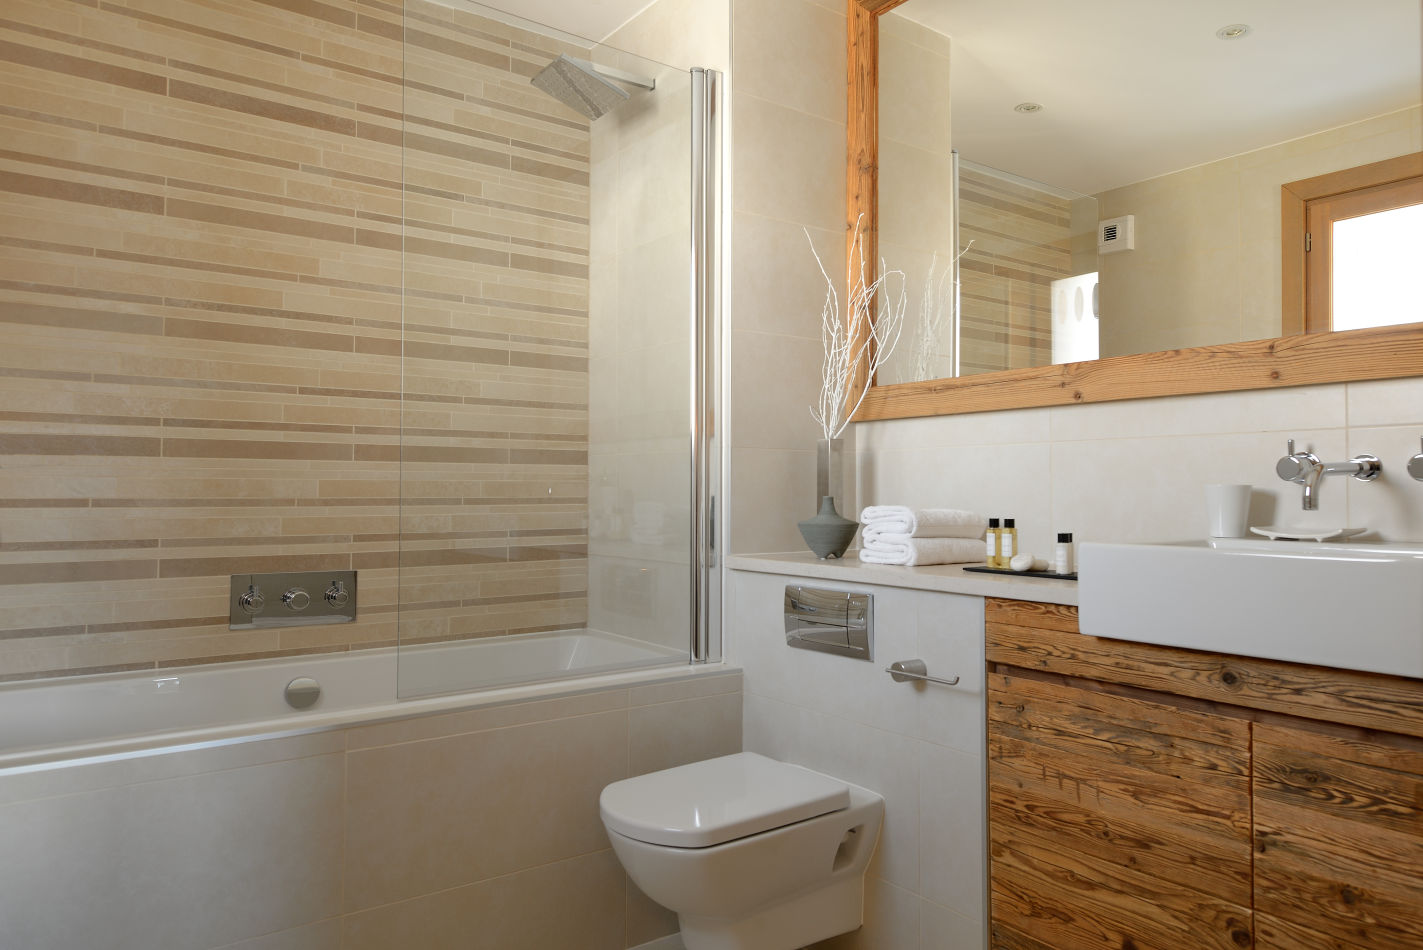 14-en-suite-bathroom-all-bathrooms-the-same-style-quality